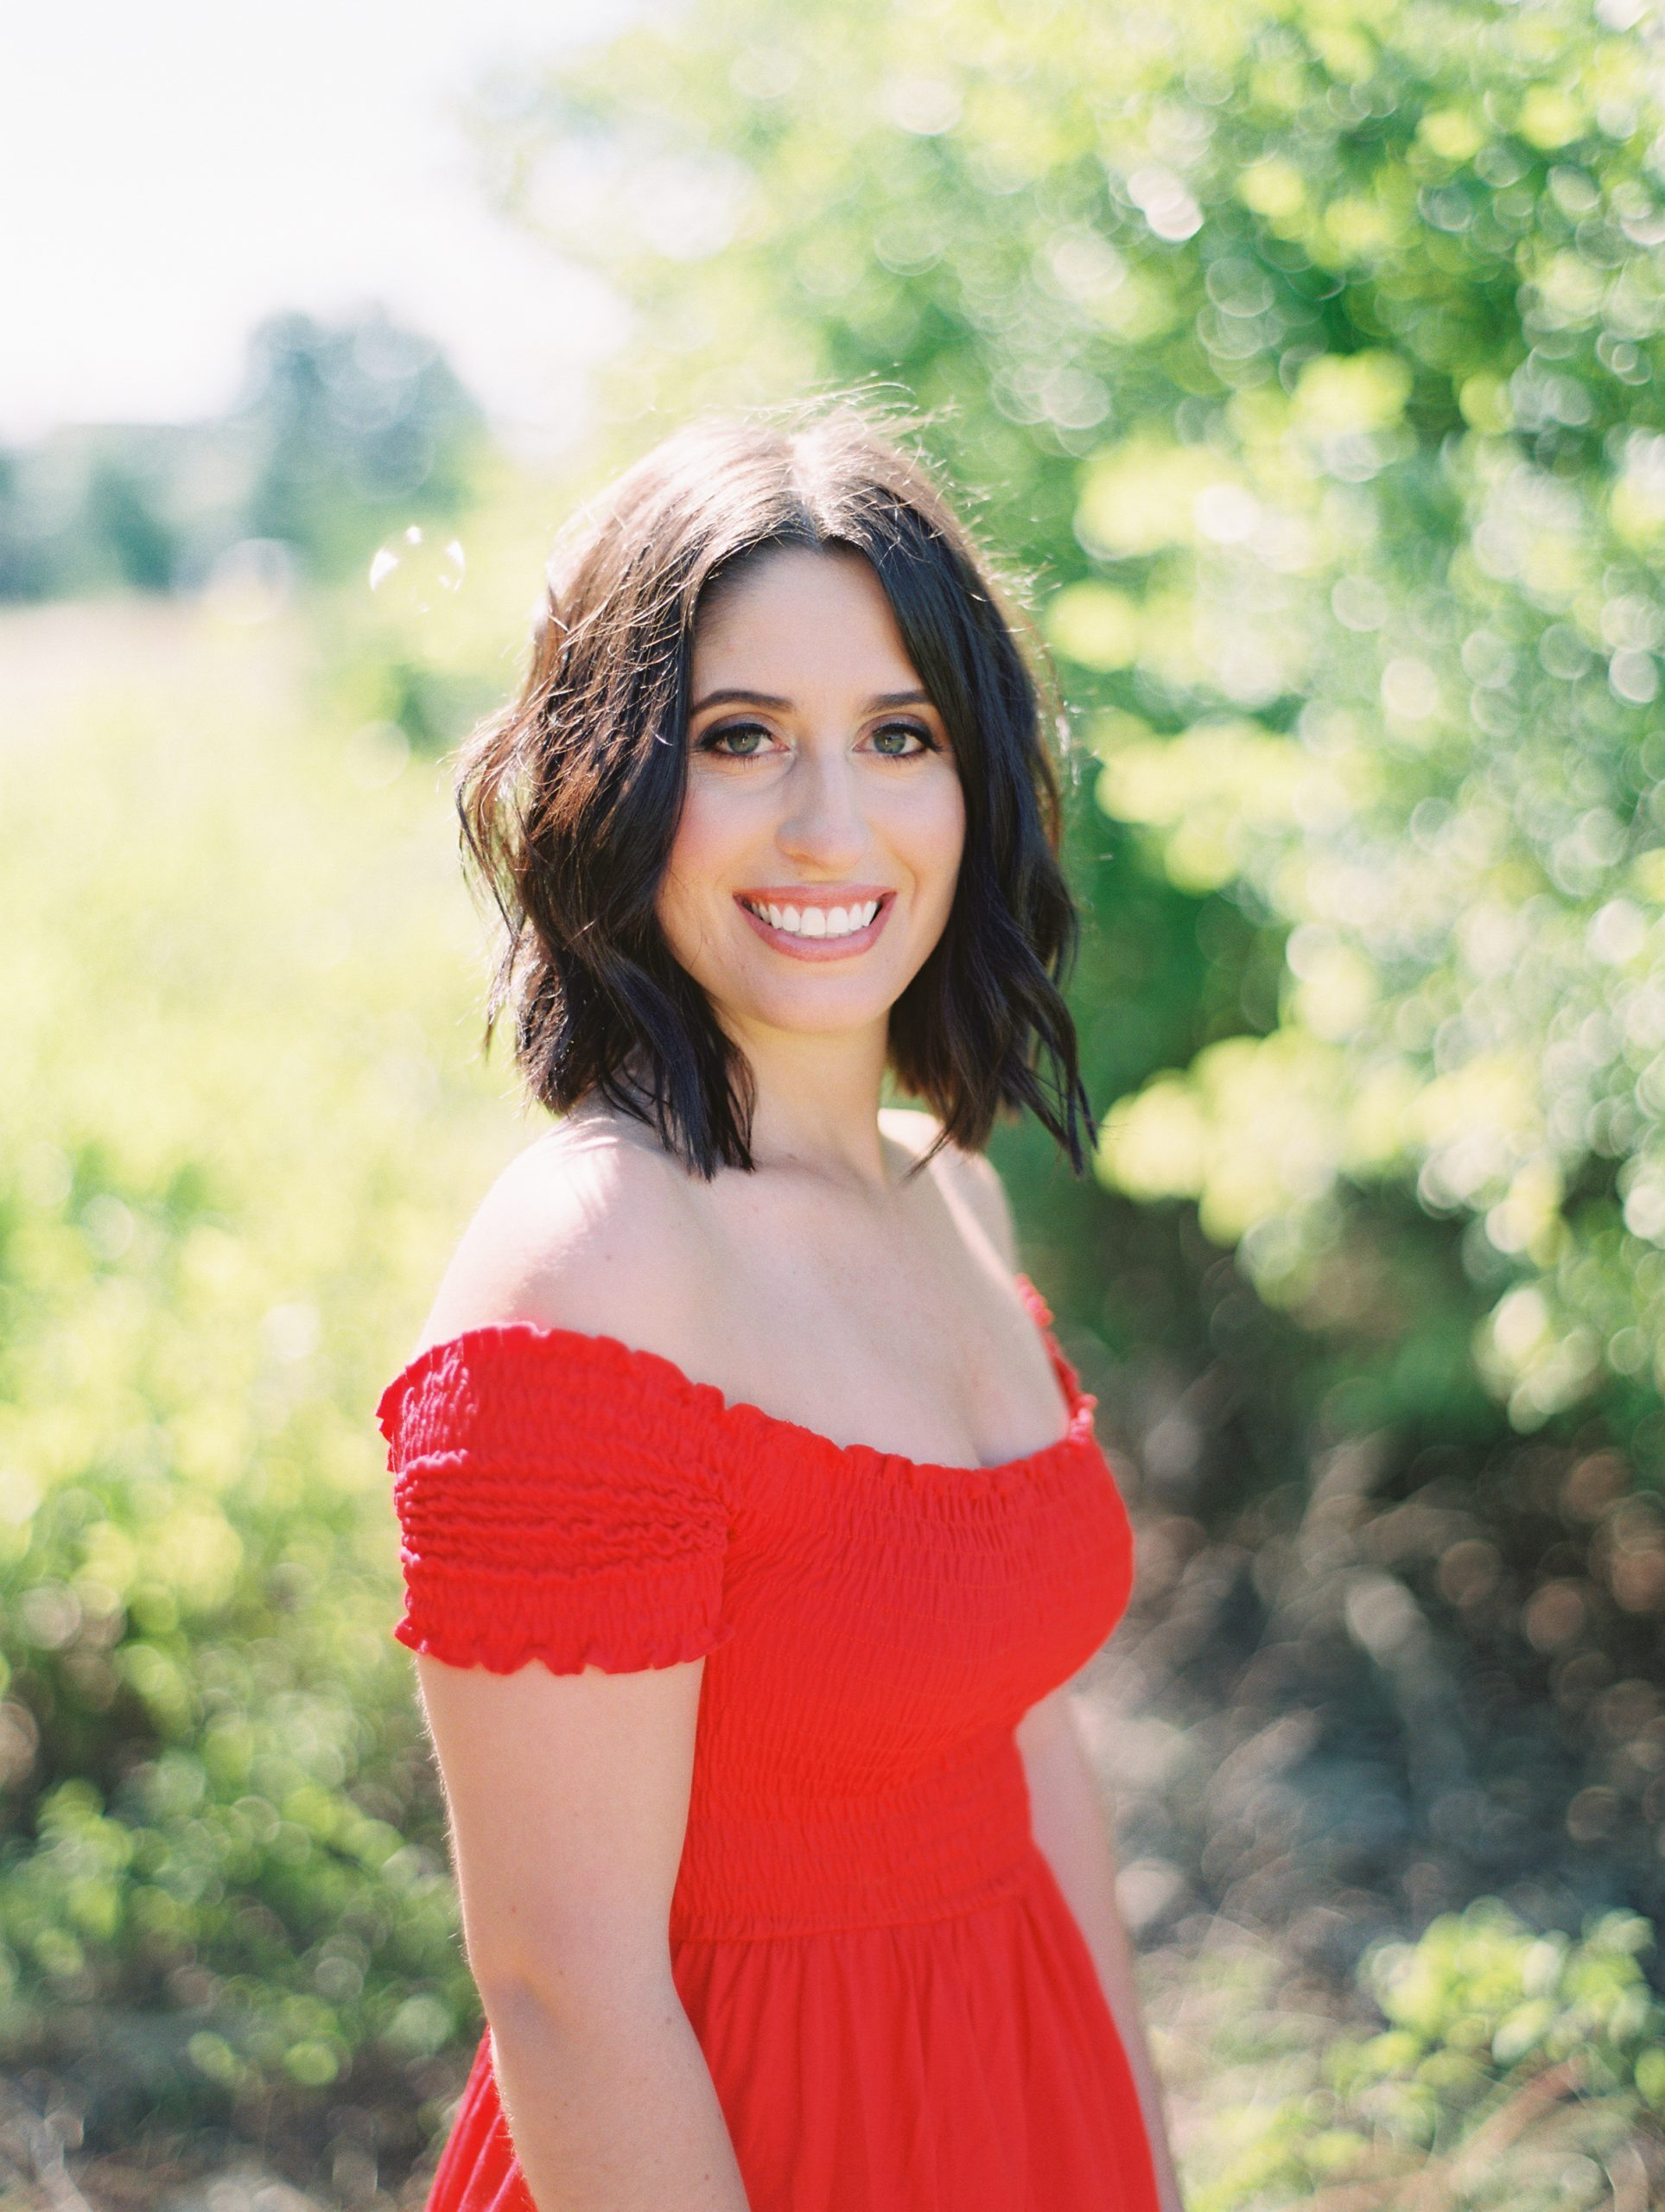 Smiling headshot of a brunette with brown eyes standing in front of a green backdrop wearing an off shoulder red dress